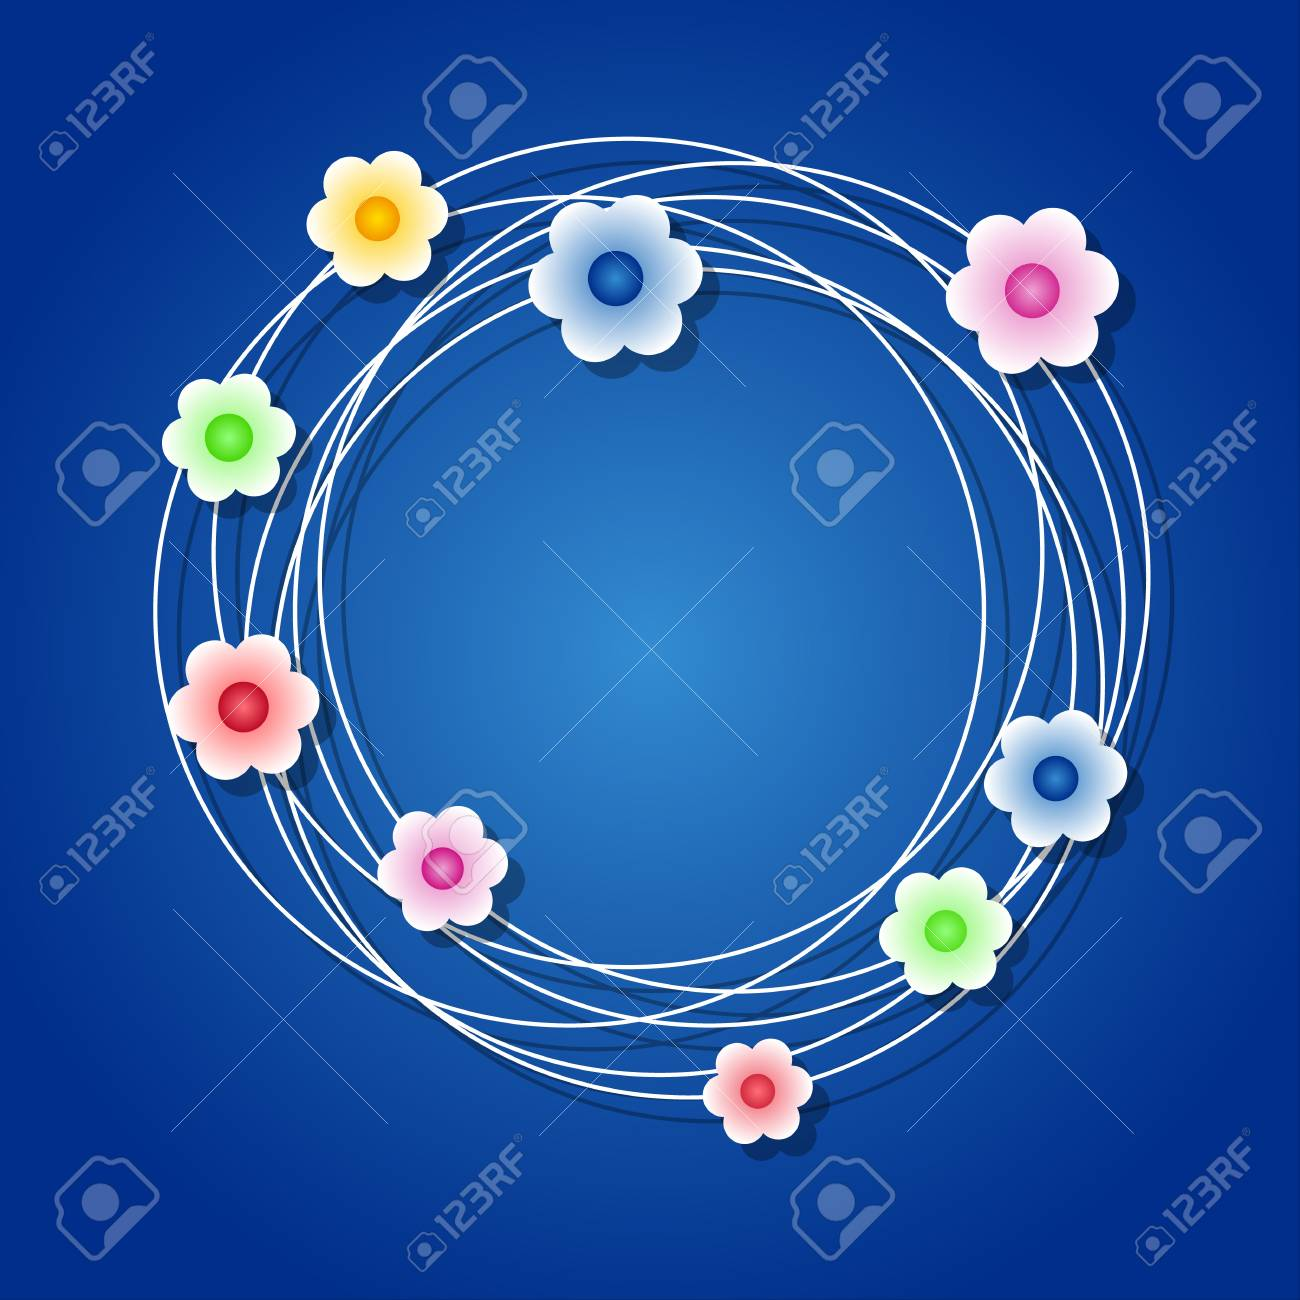 Colored floral wreath on blue background Stock Vector - 18135543